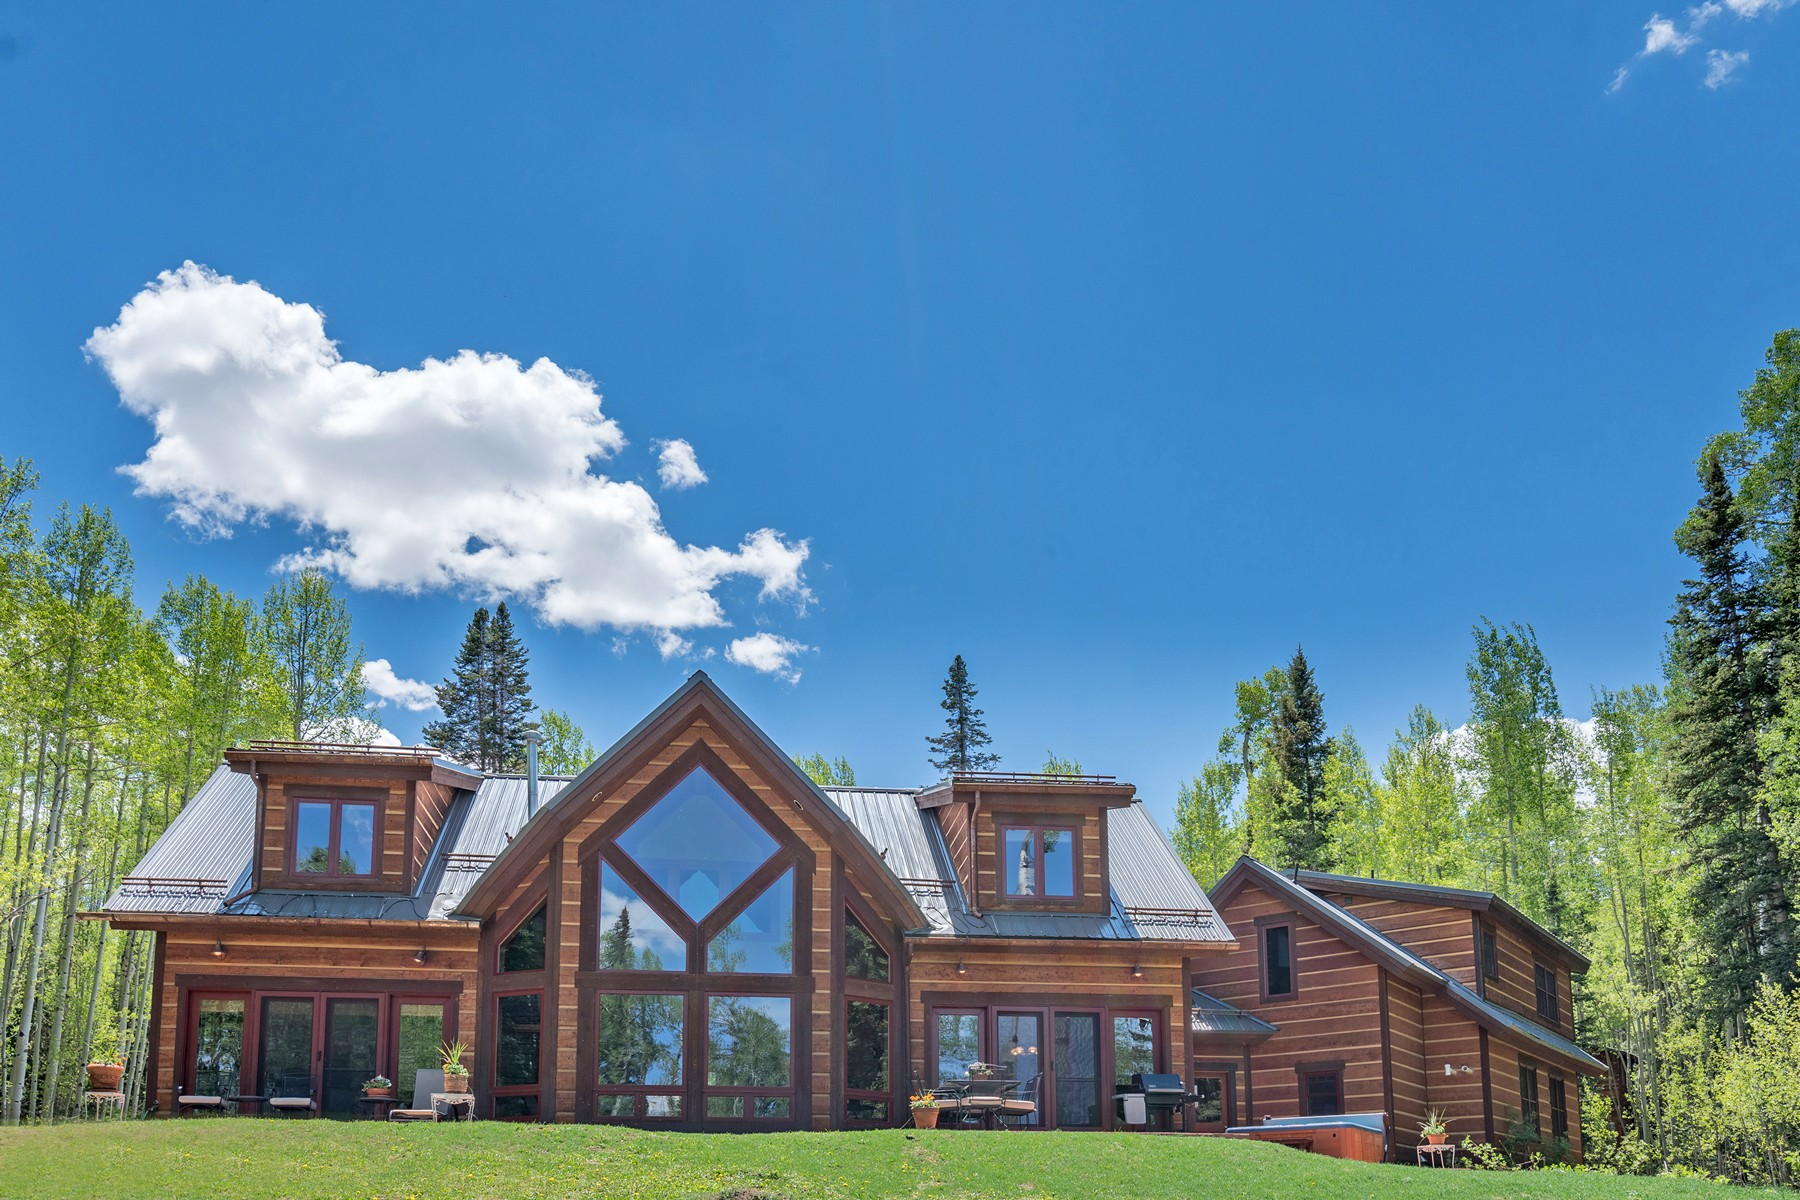 Single Family Home for Sale at 35 Skunk Creek Road Telluride, Colorado, 81435 United States